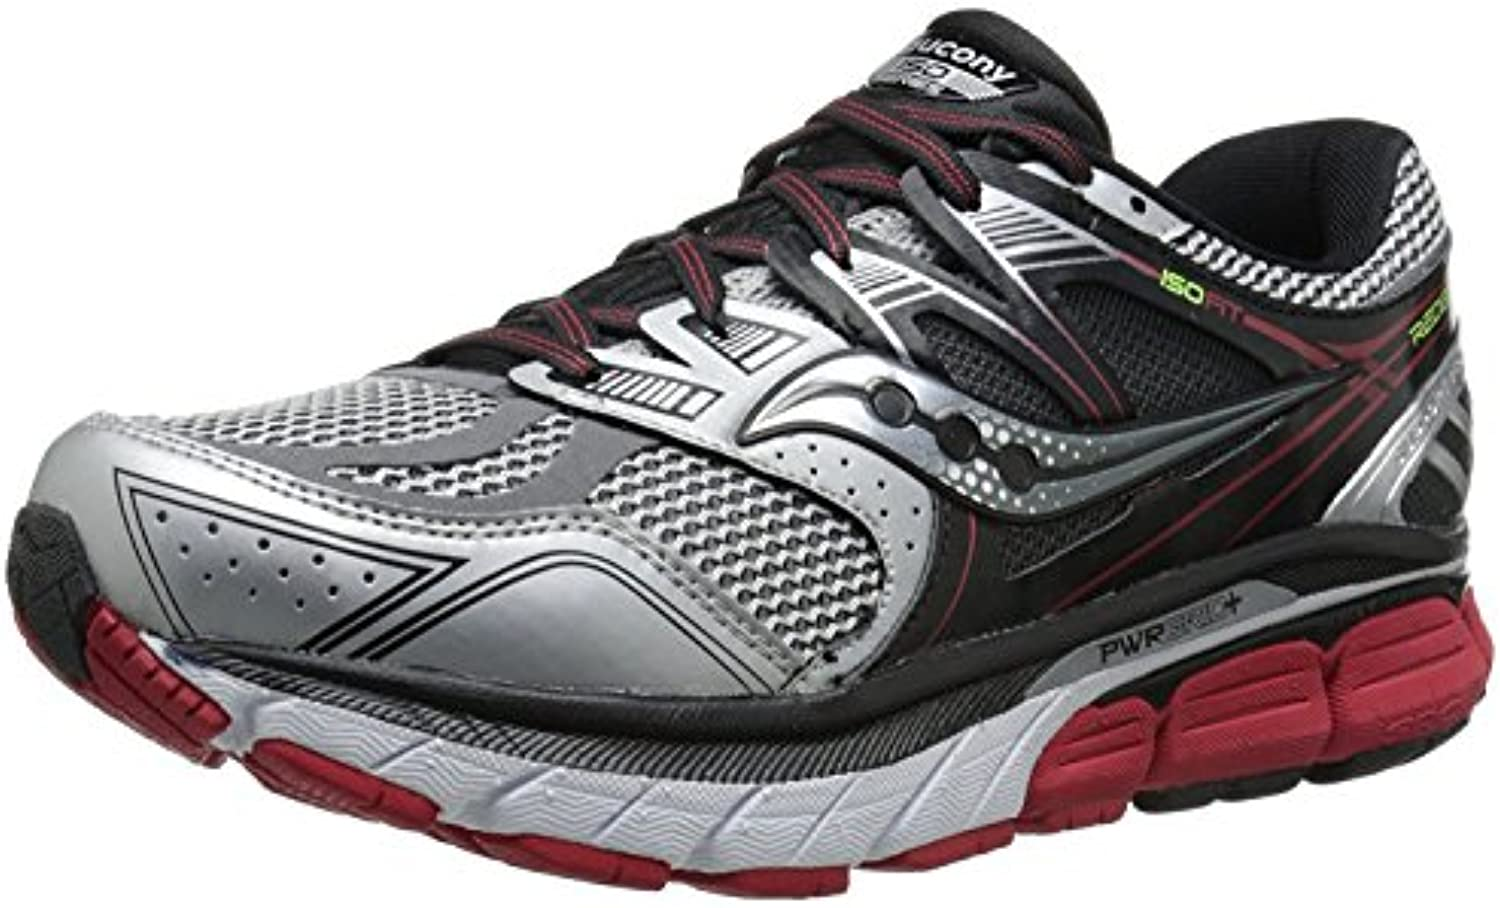 Saucony Men's Redeemer ISO Road Running Shoe  Silber/Schwarz  44.5 3E EU/9.5 3E UK